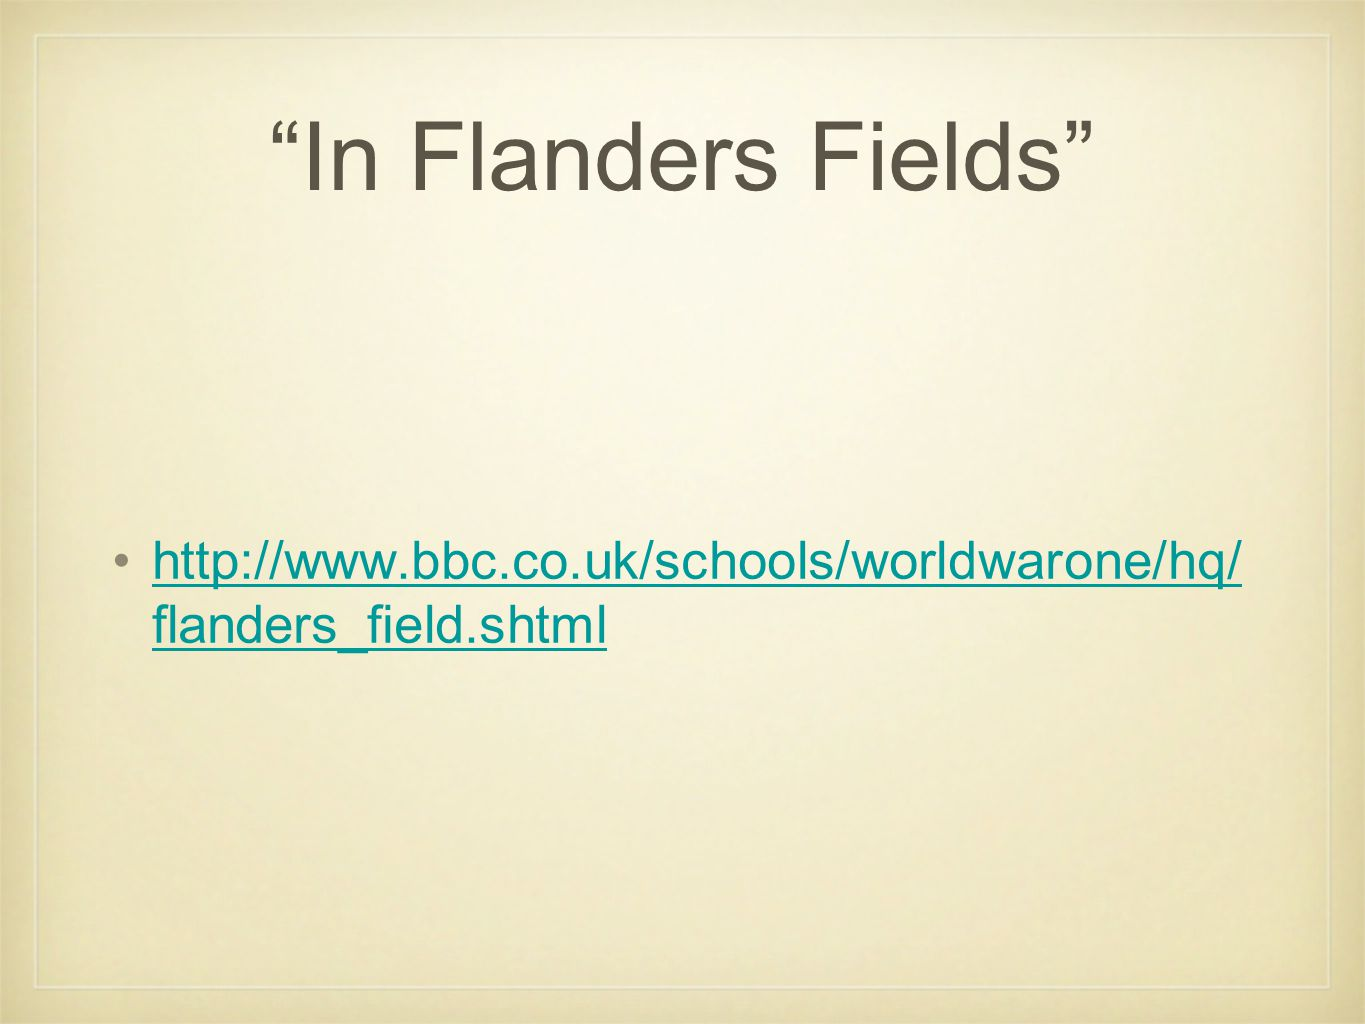 In Flanders Fields http://www.bbc.co.uk/schools/worldwarone/hq/ flanders_field.shtmlhttp://www.bbc.co.uk/schools/worldwarone/hq/ flanders_field.shtml